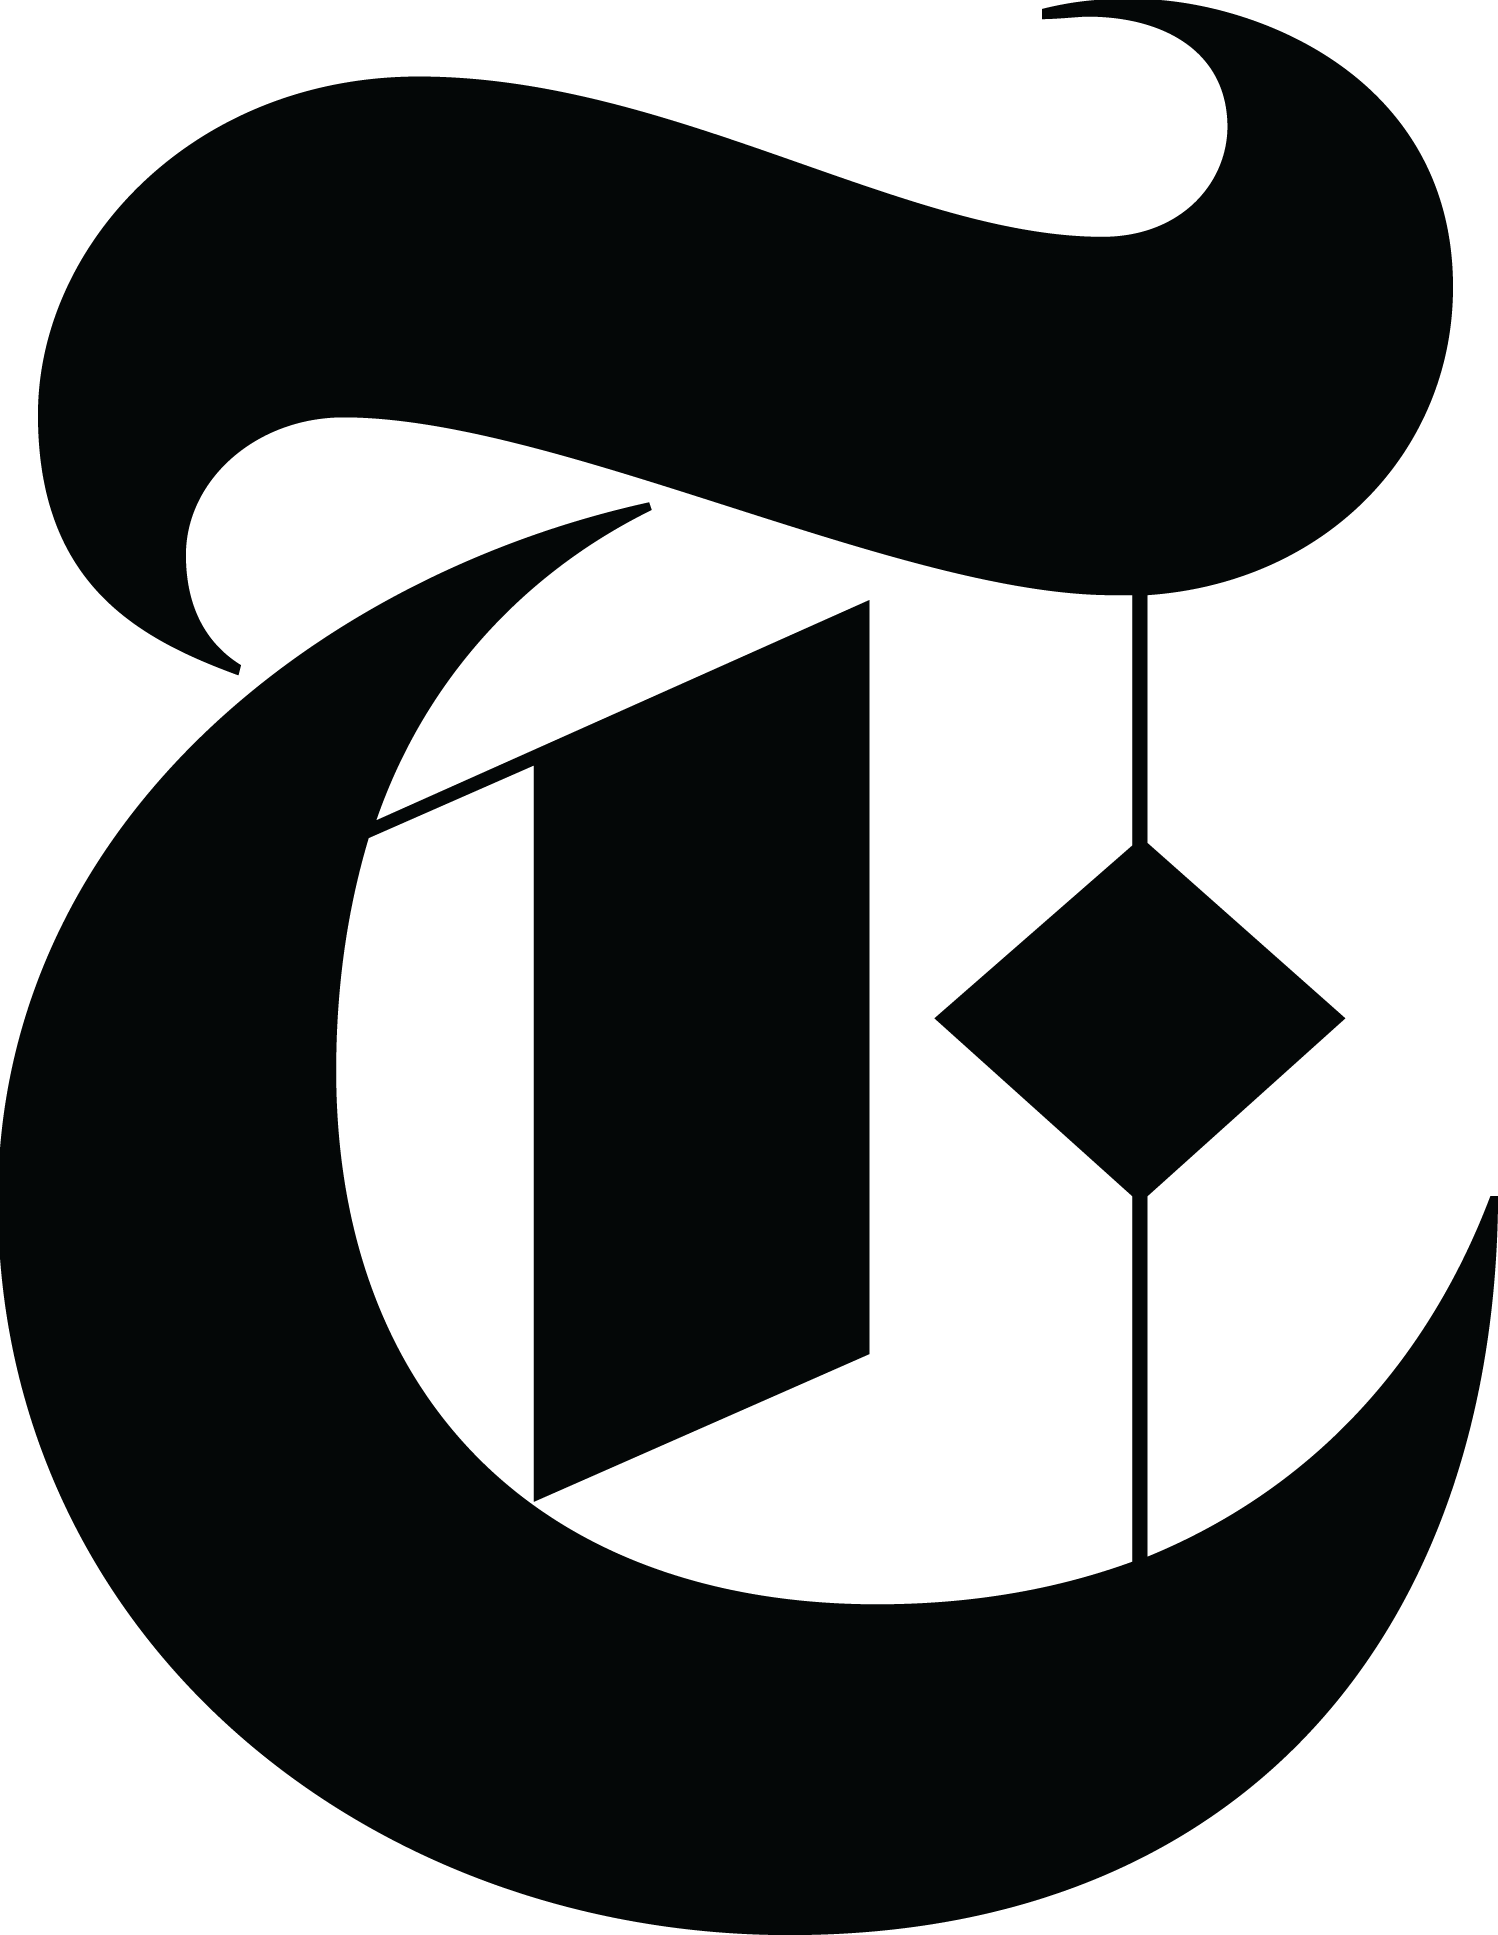 New york times logo png. Symbol all logos world